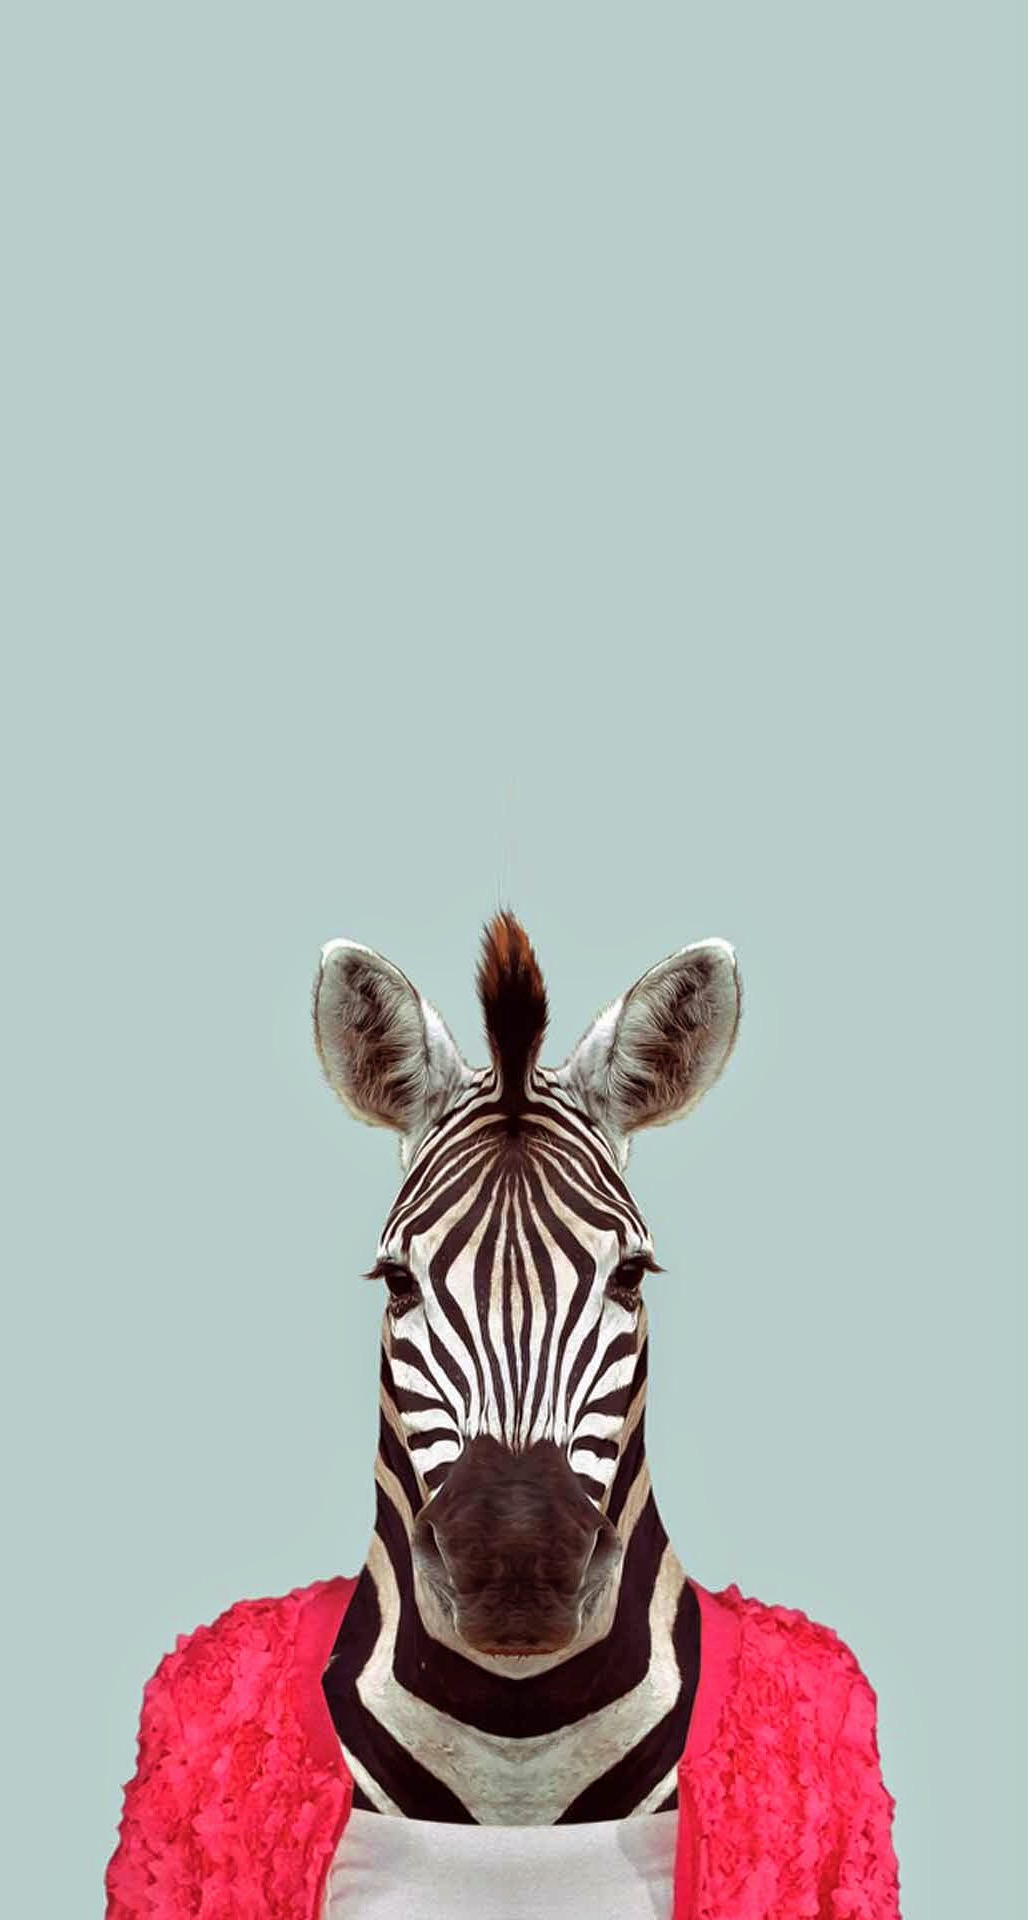 Zebra Funny Animal Portrait iPhone 6 Plus HD Wallpaper